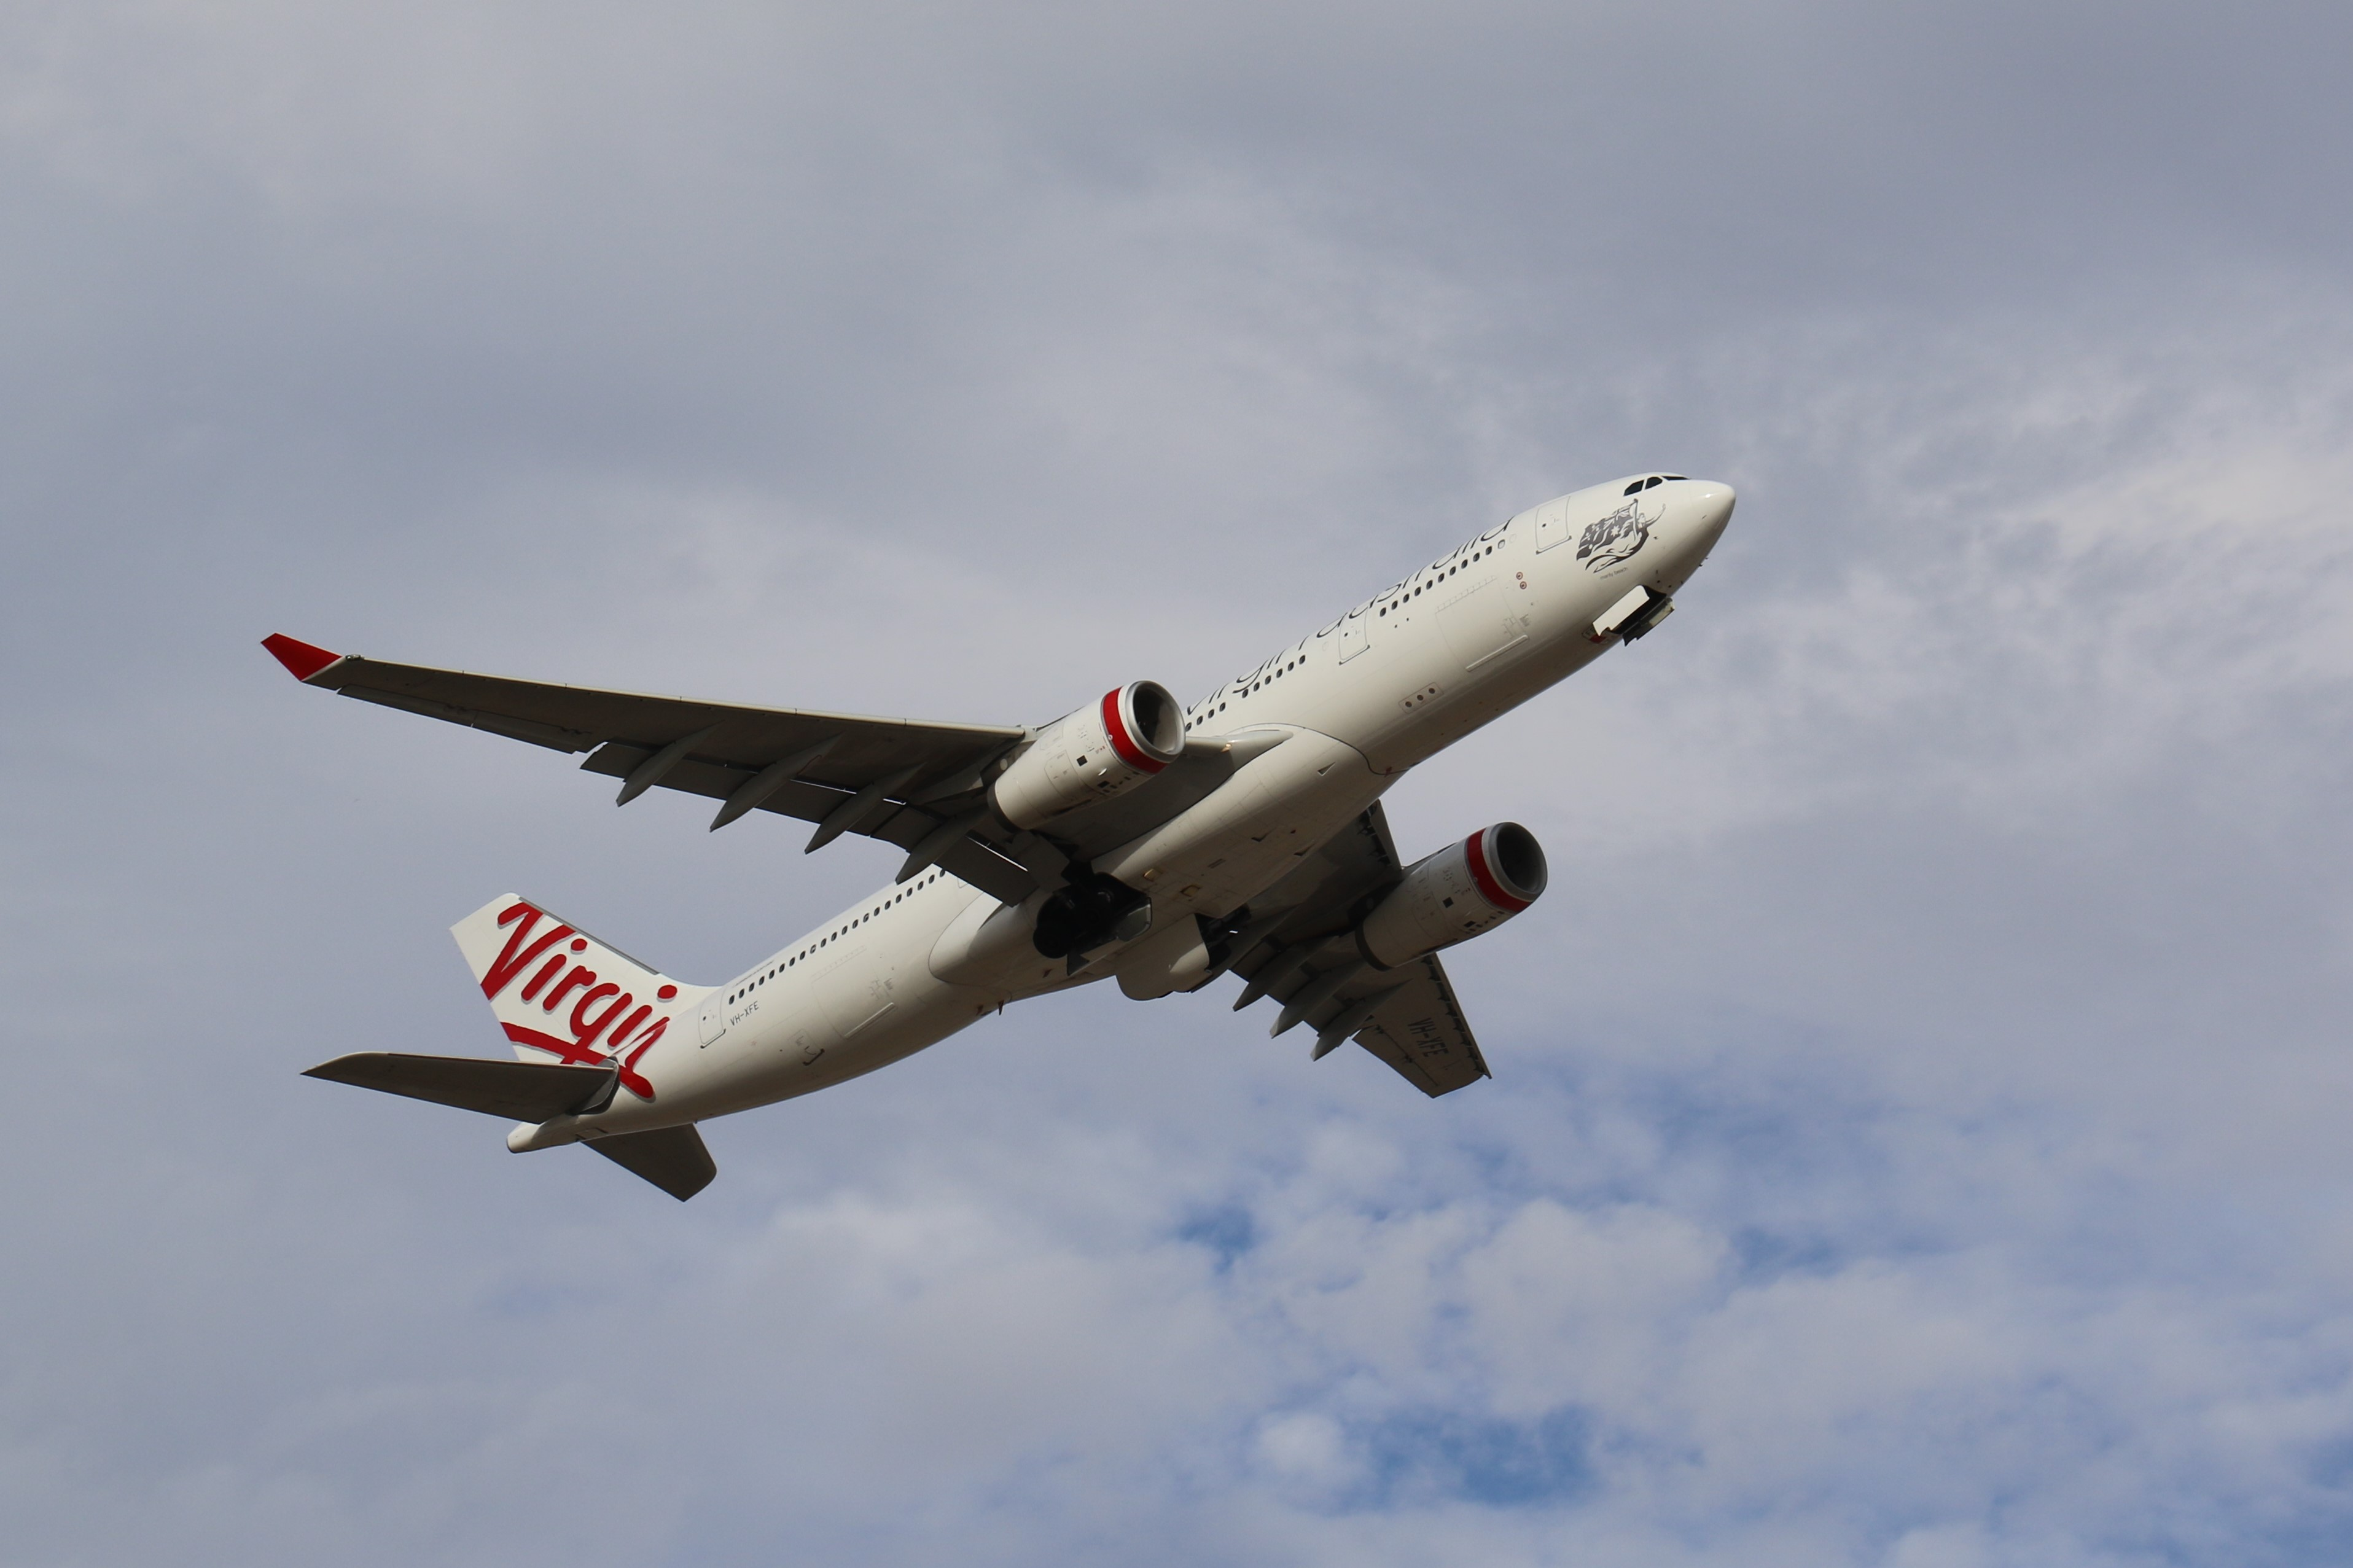 Airbus A330-243 - VH-XFE. Operated by Virgin Australia. Believed to be en-route to Melbourne.